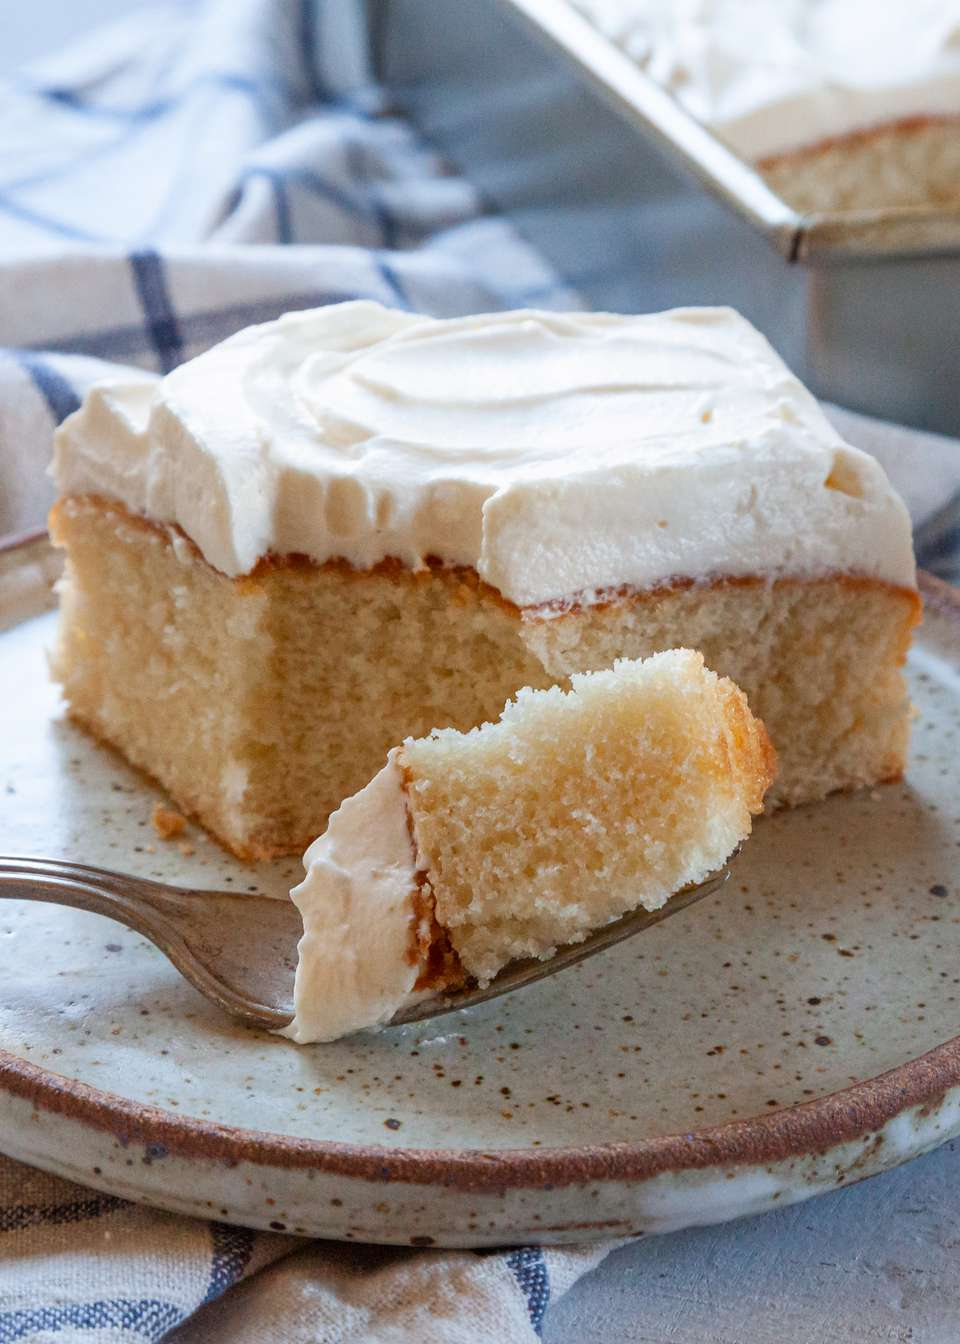 Side view of a copycat box white cake topped with frosting and on a plate with a bite on a fork.